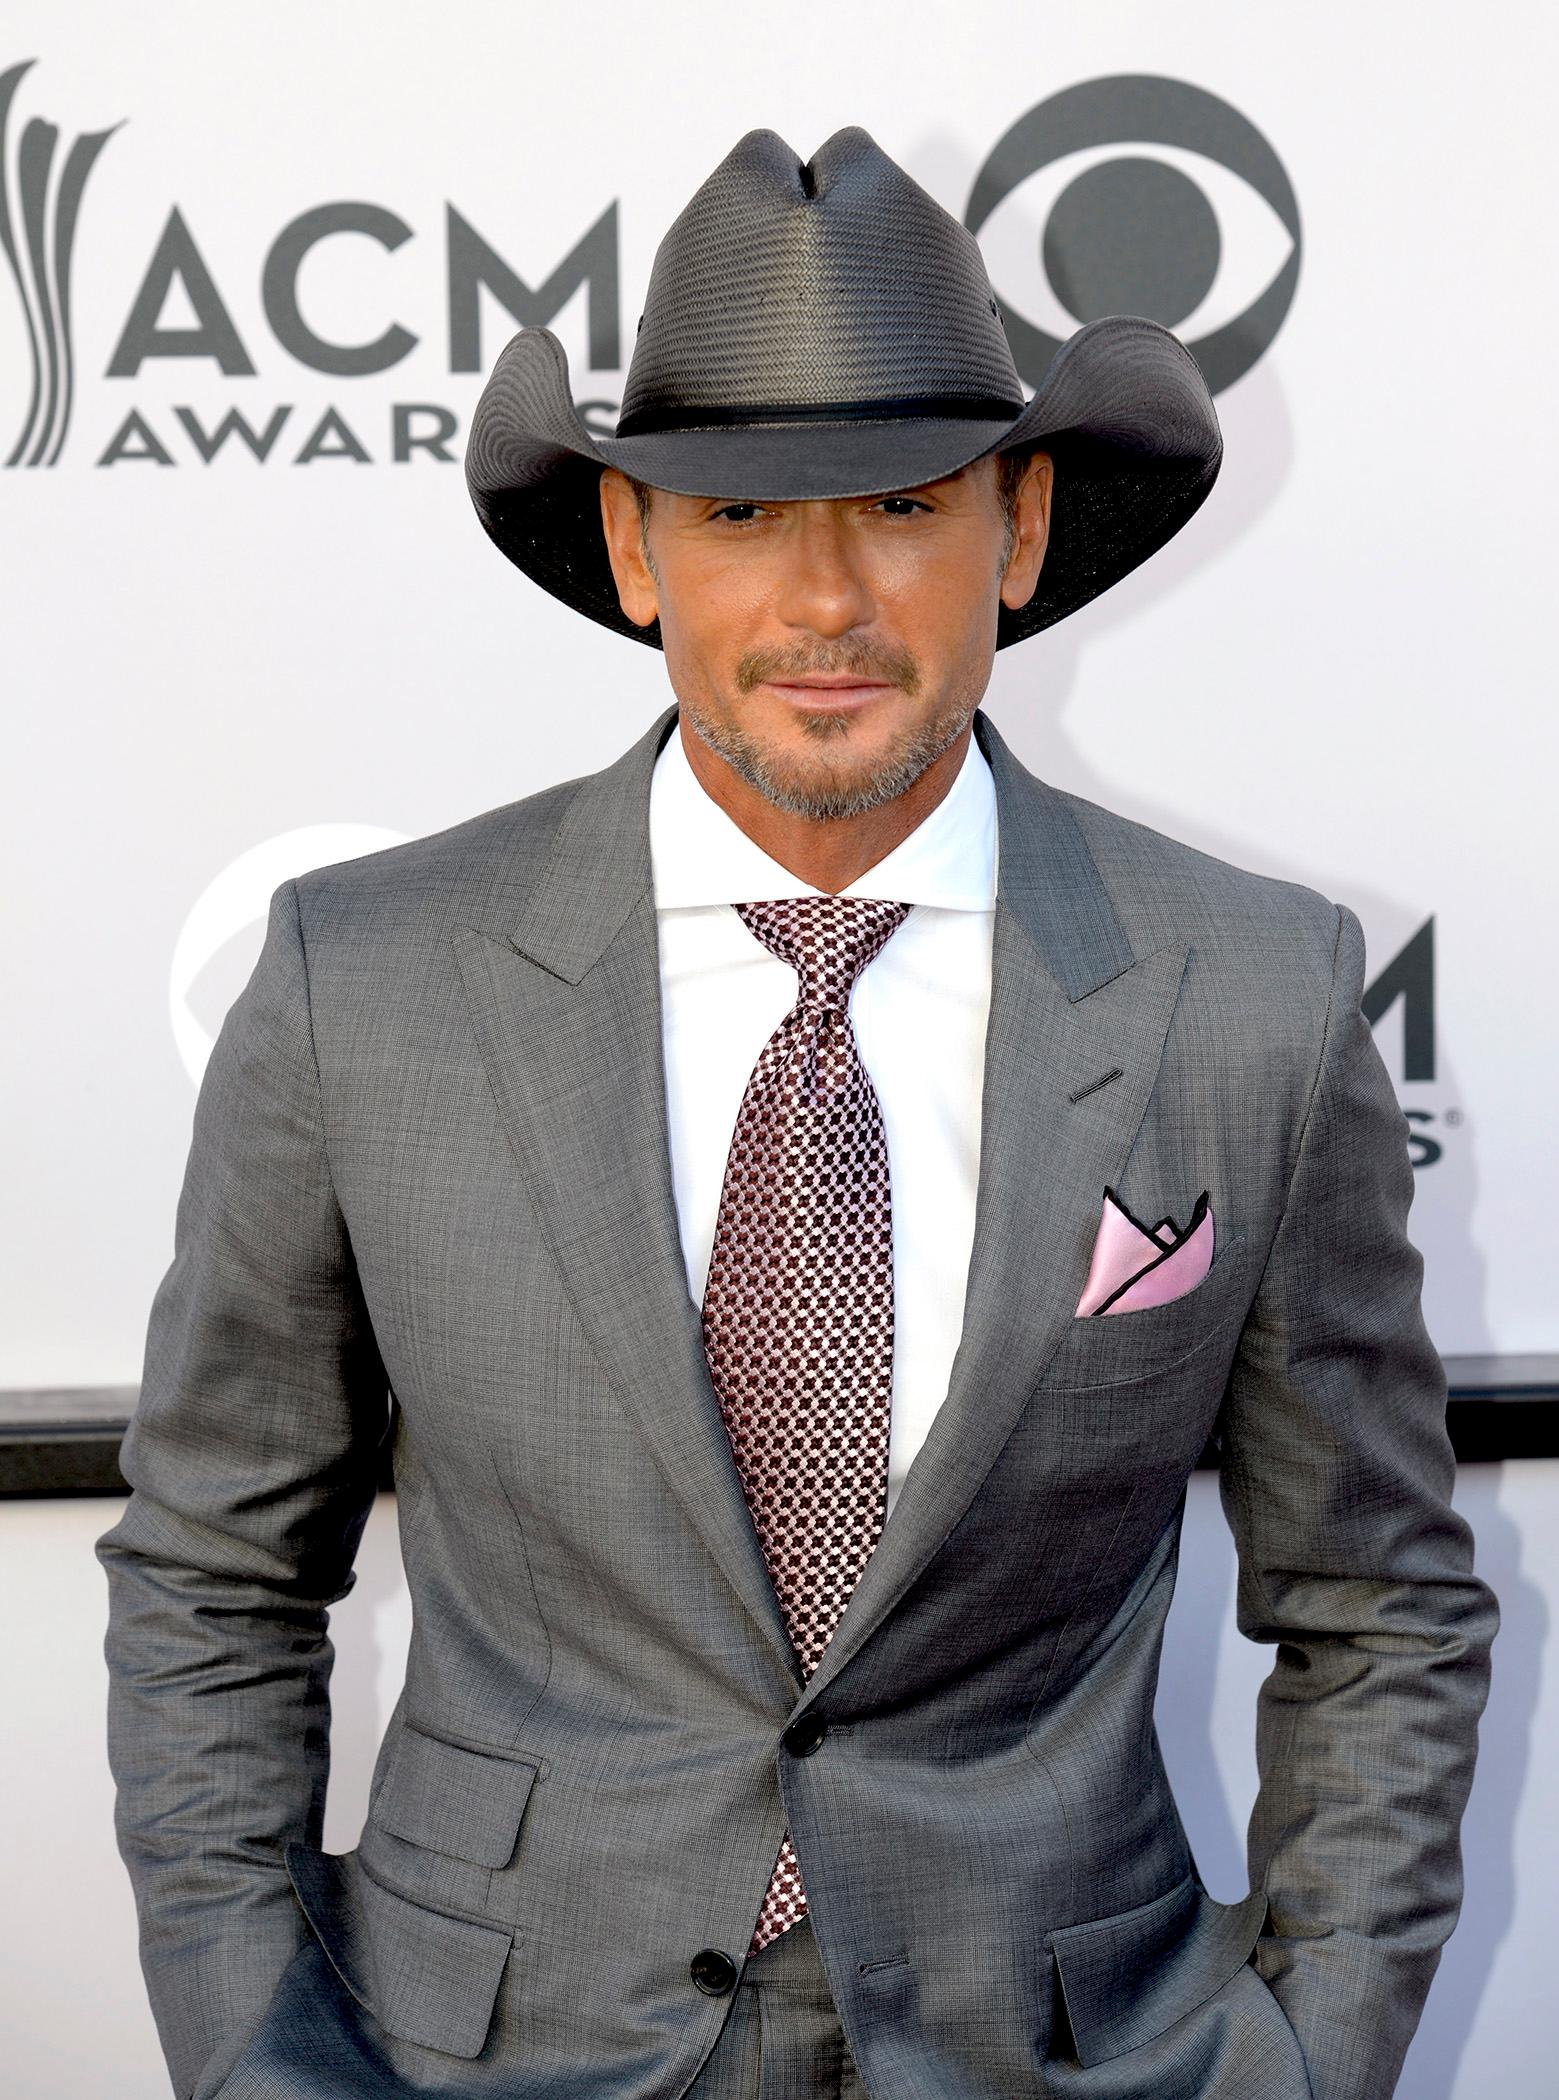 Tim McGraw, nominee for Single Record of the Year Song of the Year and Vocal Event of the Year on the Academy of Country Music Awards red carpet at T-Mobile Arena. Sunday, April 2, 2017. (Glenn Pinkerton/ Las Vegas News Bureau)